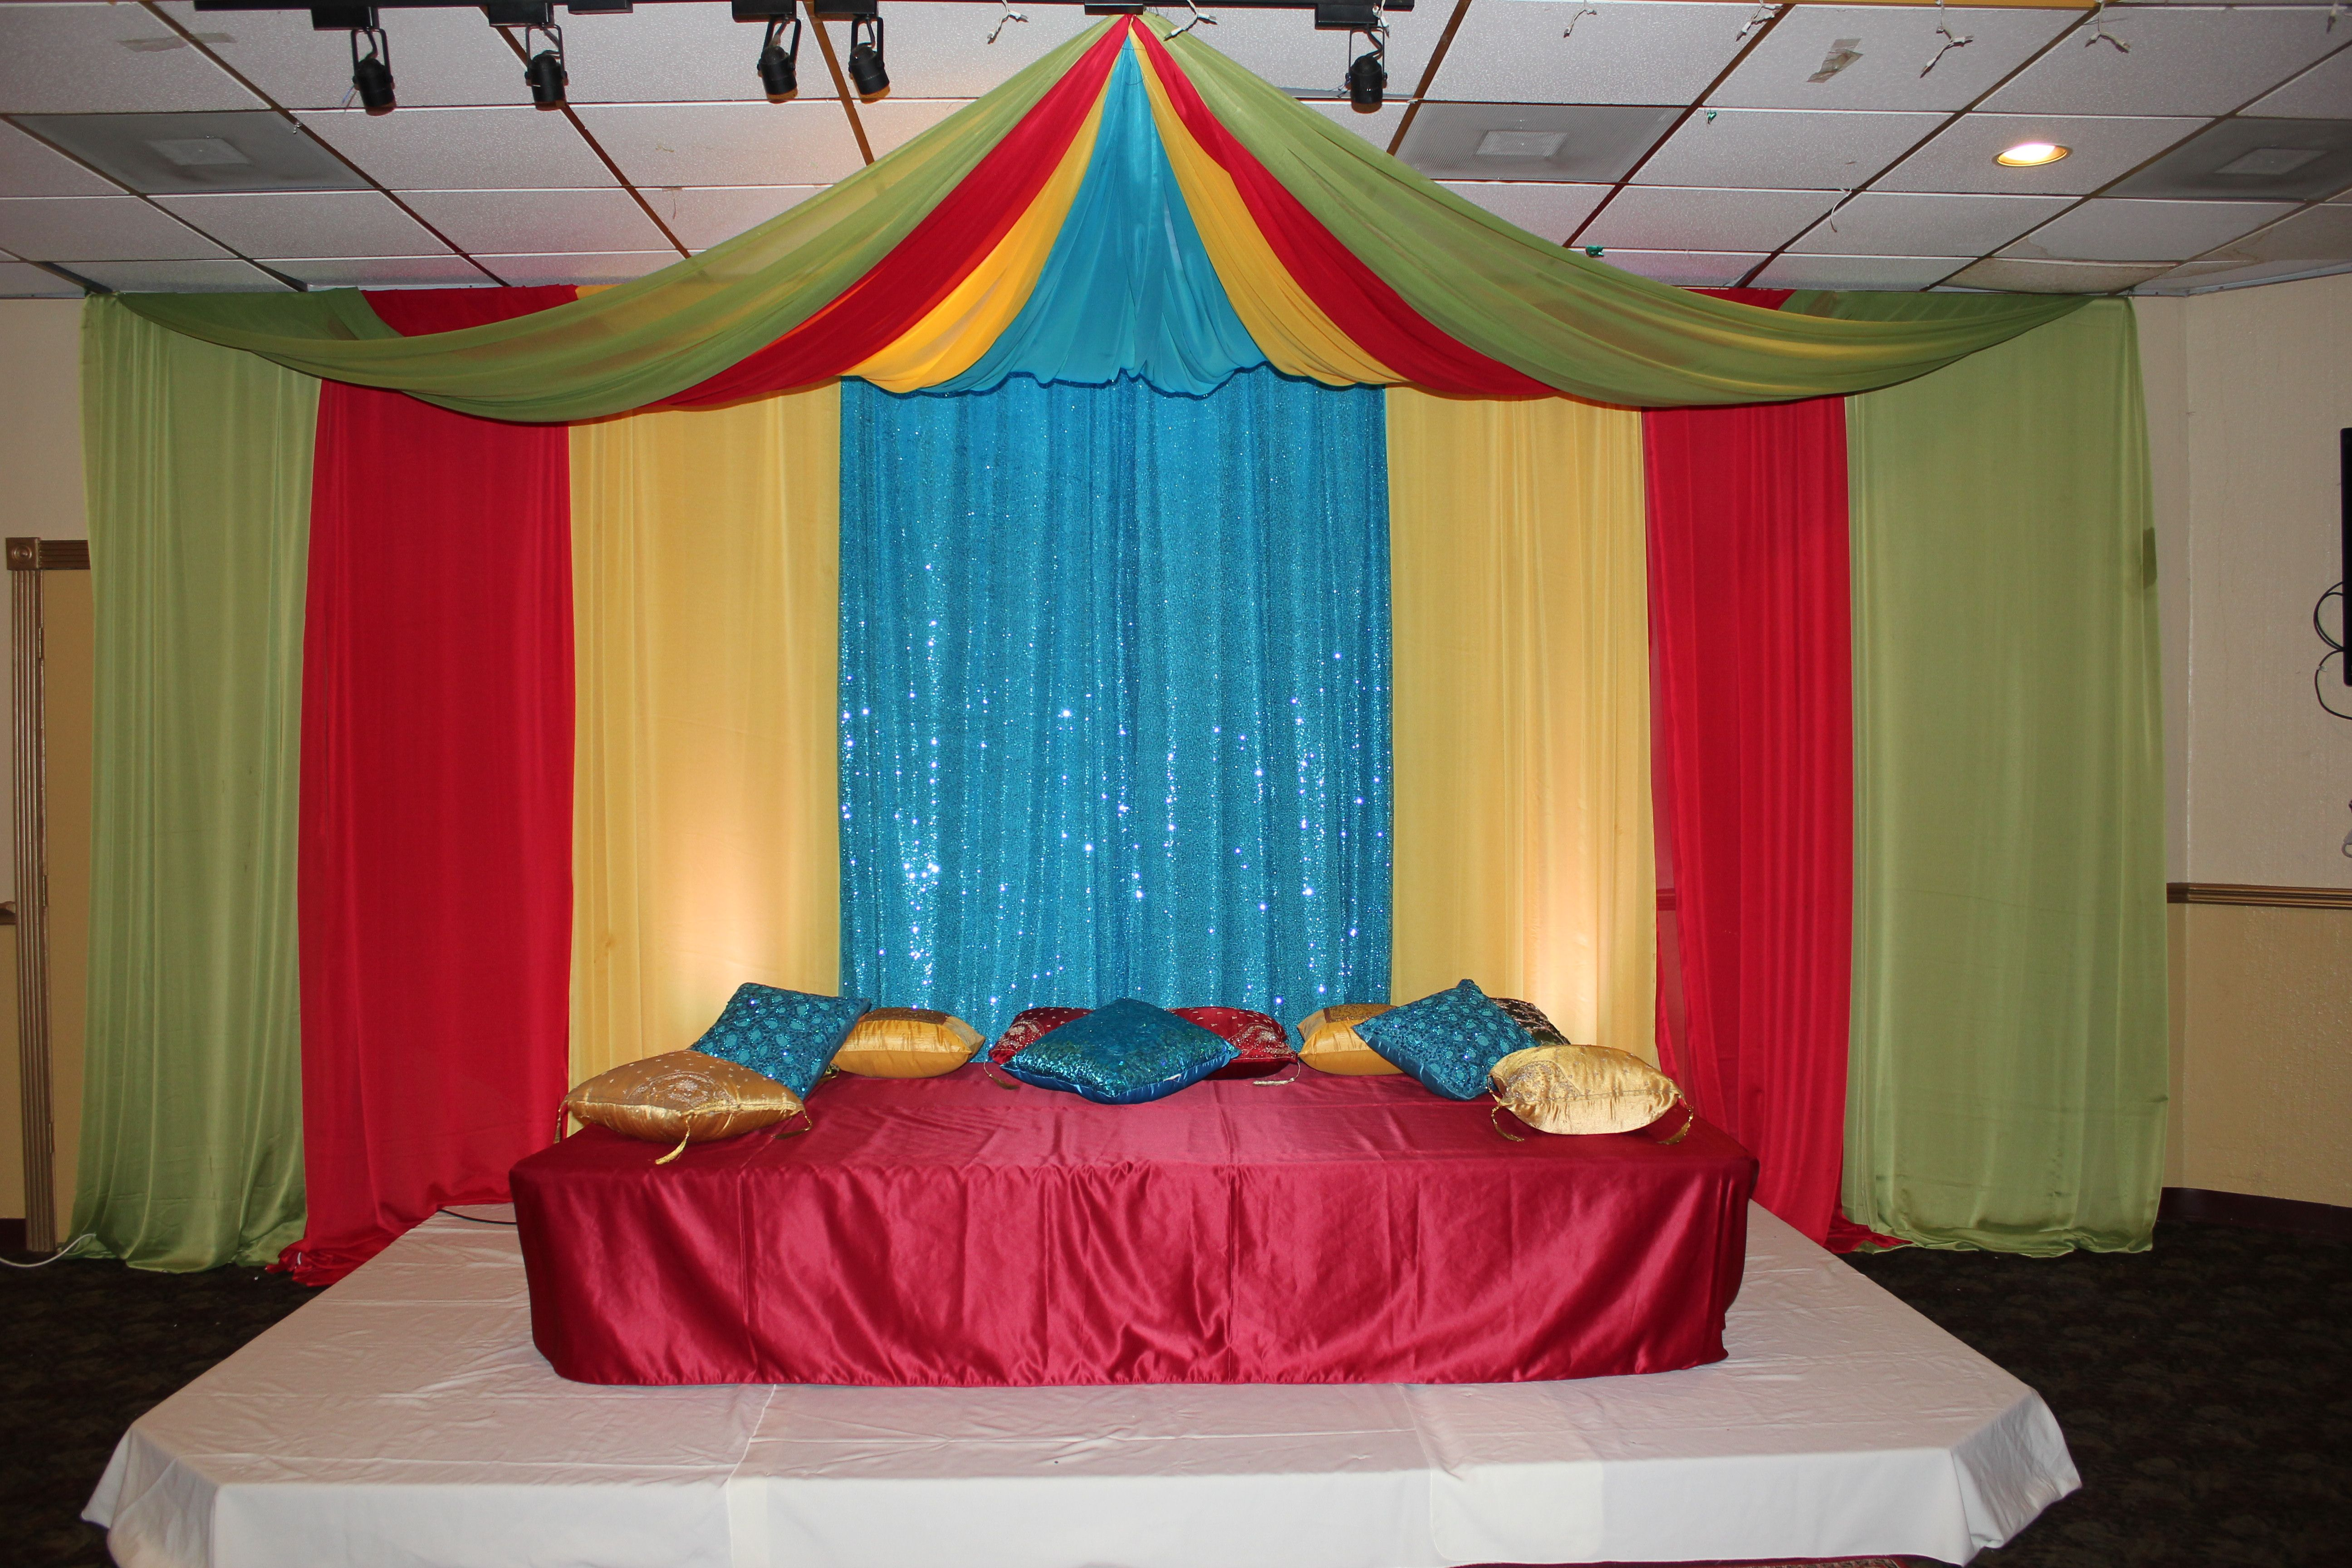 Mehndi Backdrop Diy : Stage backdrop for mehndi with canopy in green red yellow